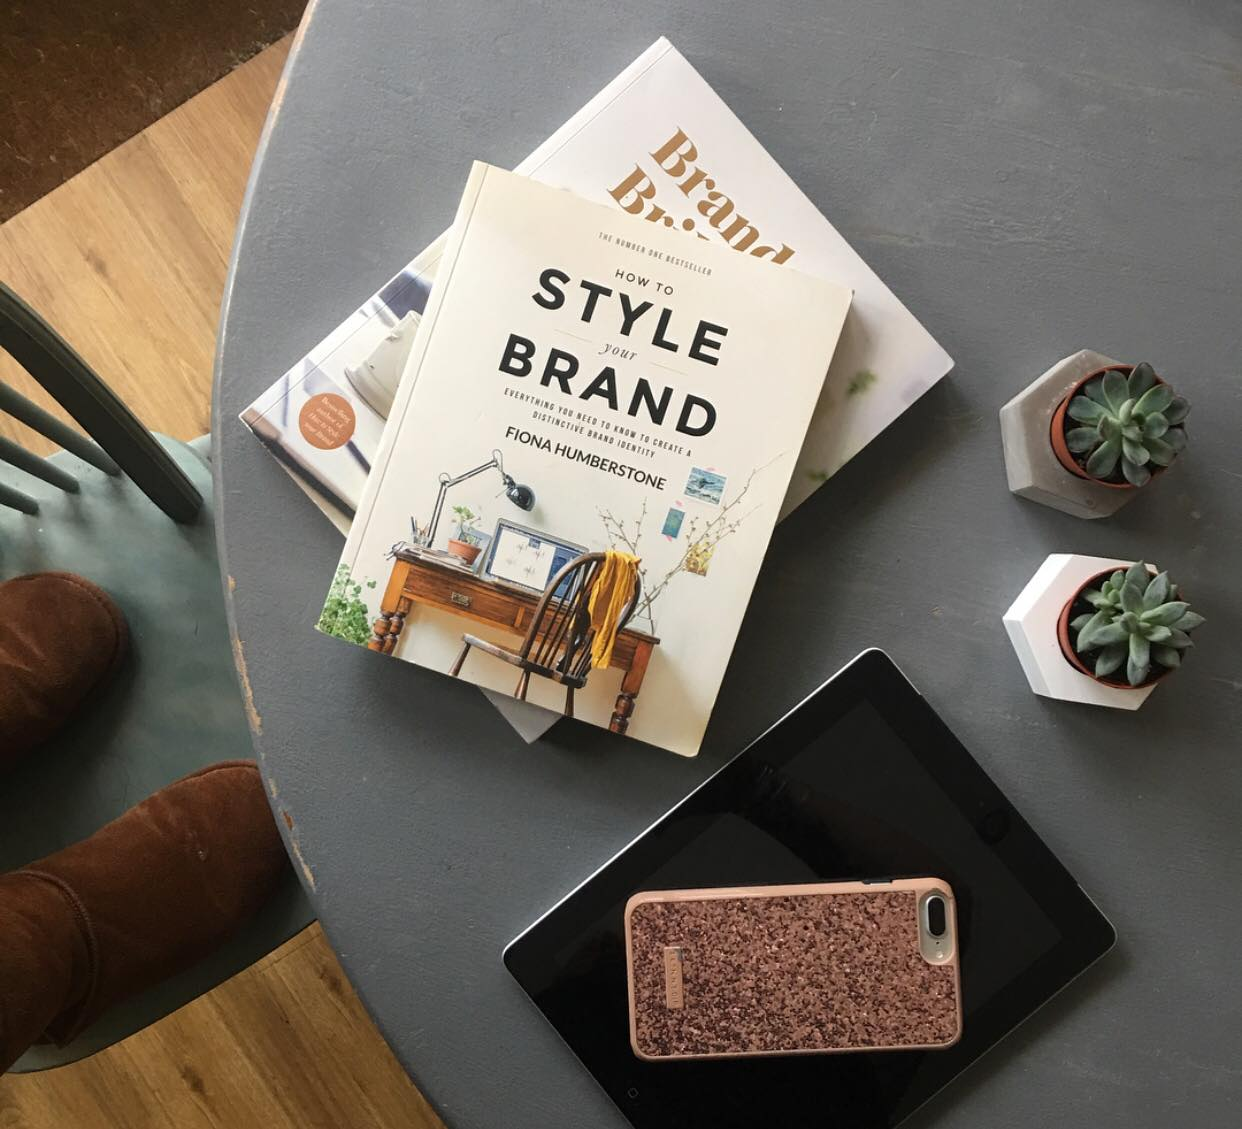 STYLING YOUR BRAND